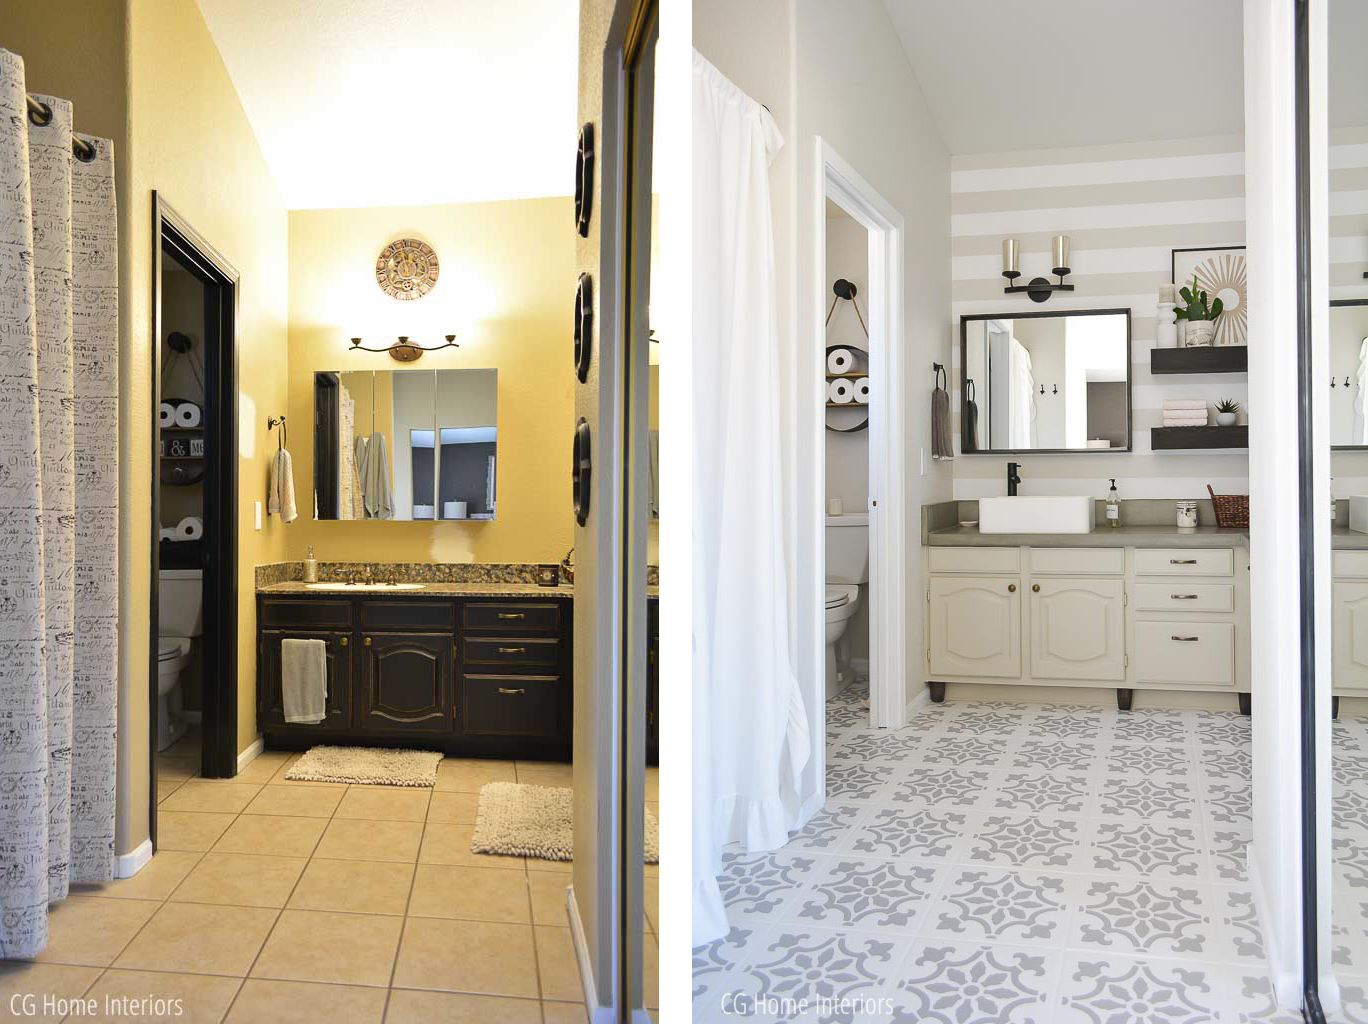 Builder Grade Bathroom Remodel on a Budget Before and After